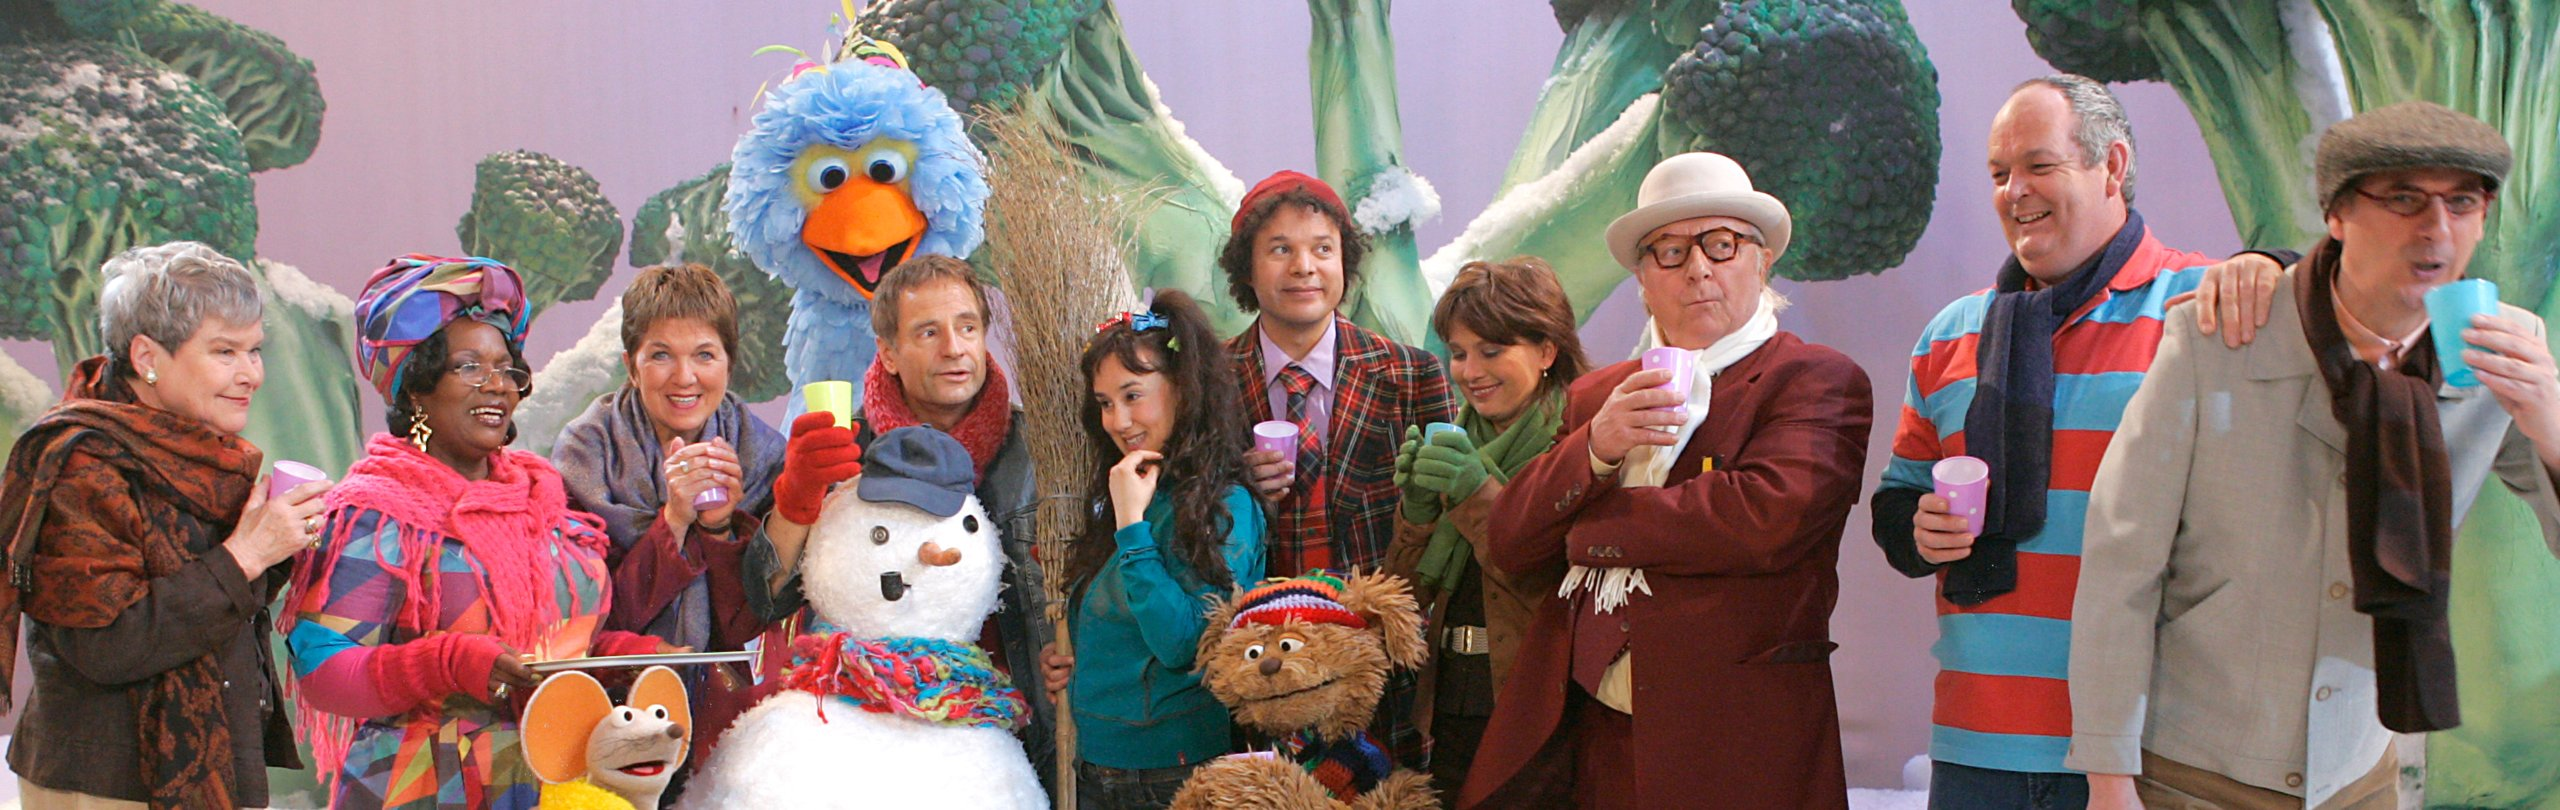 The cast of Sesamestraat poses with a snowman